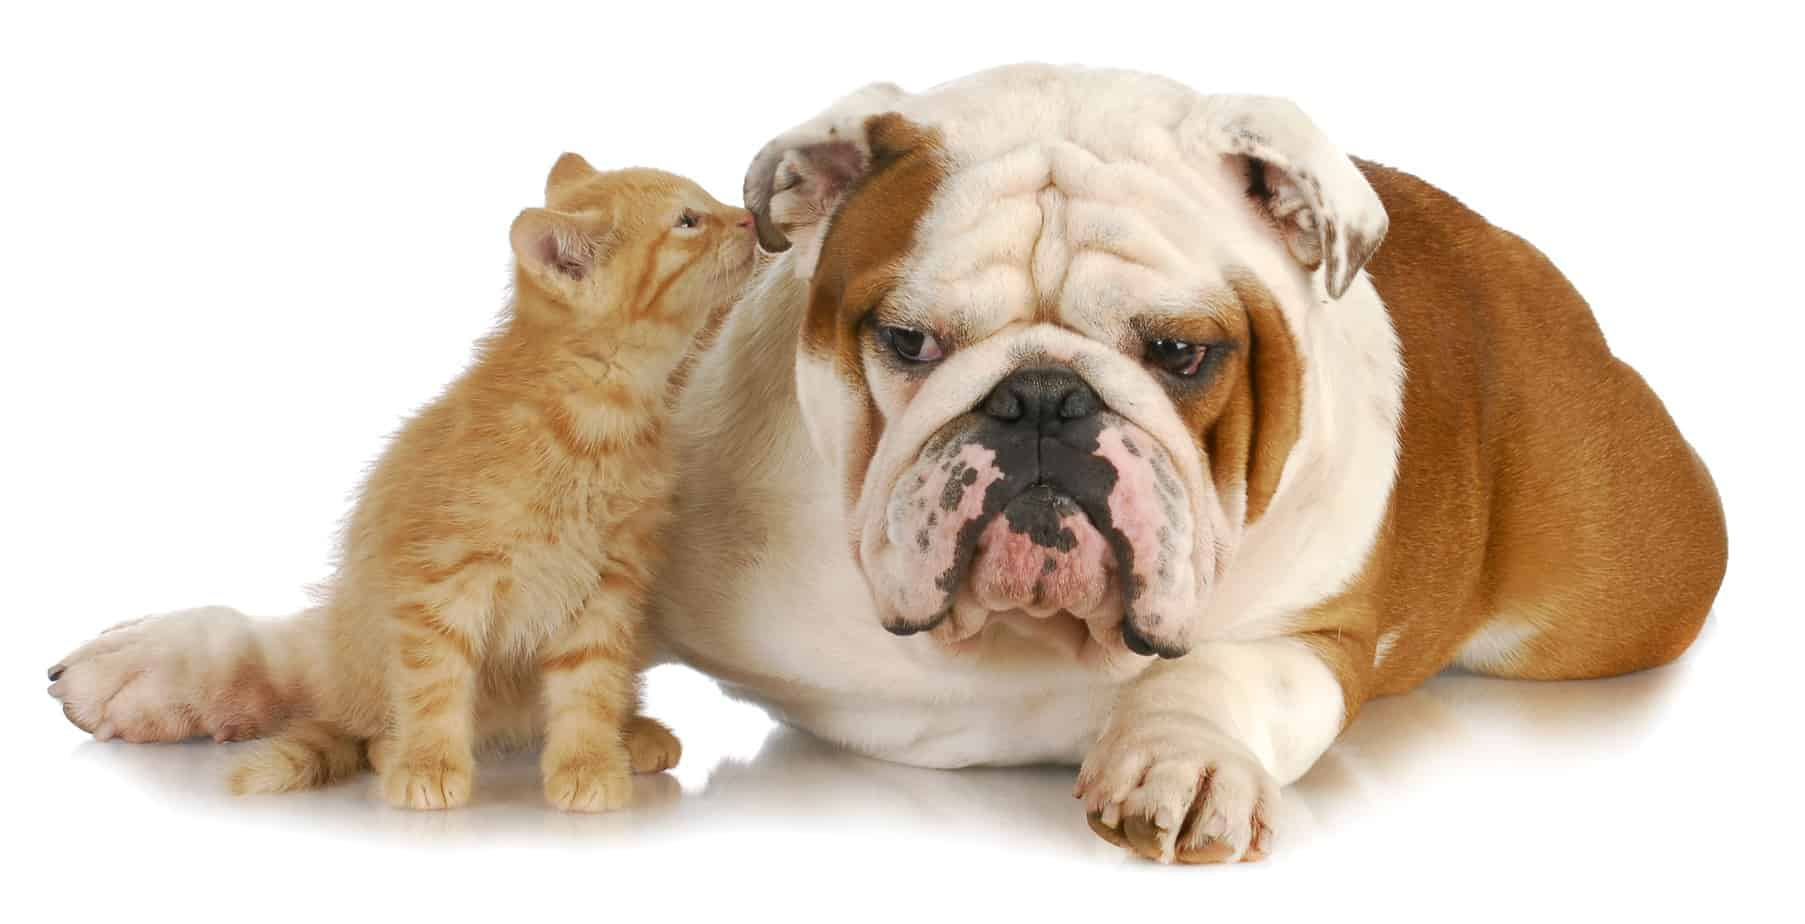 Cat whispering in the ear of an English bulldog